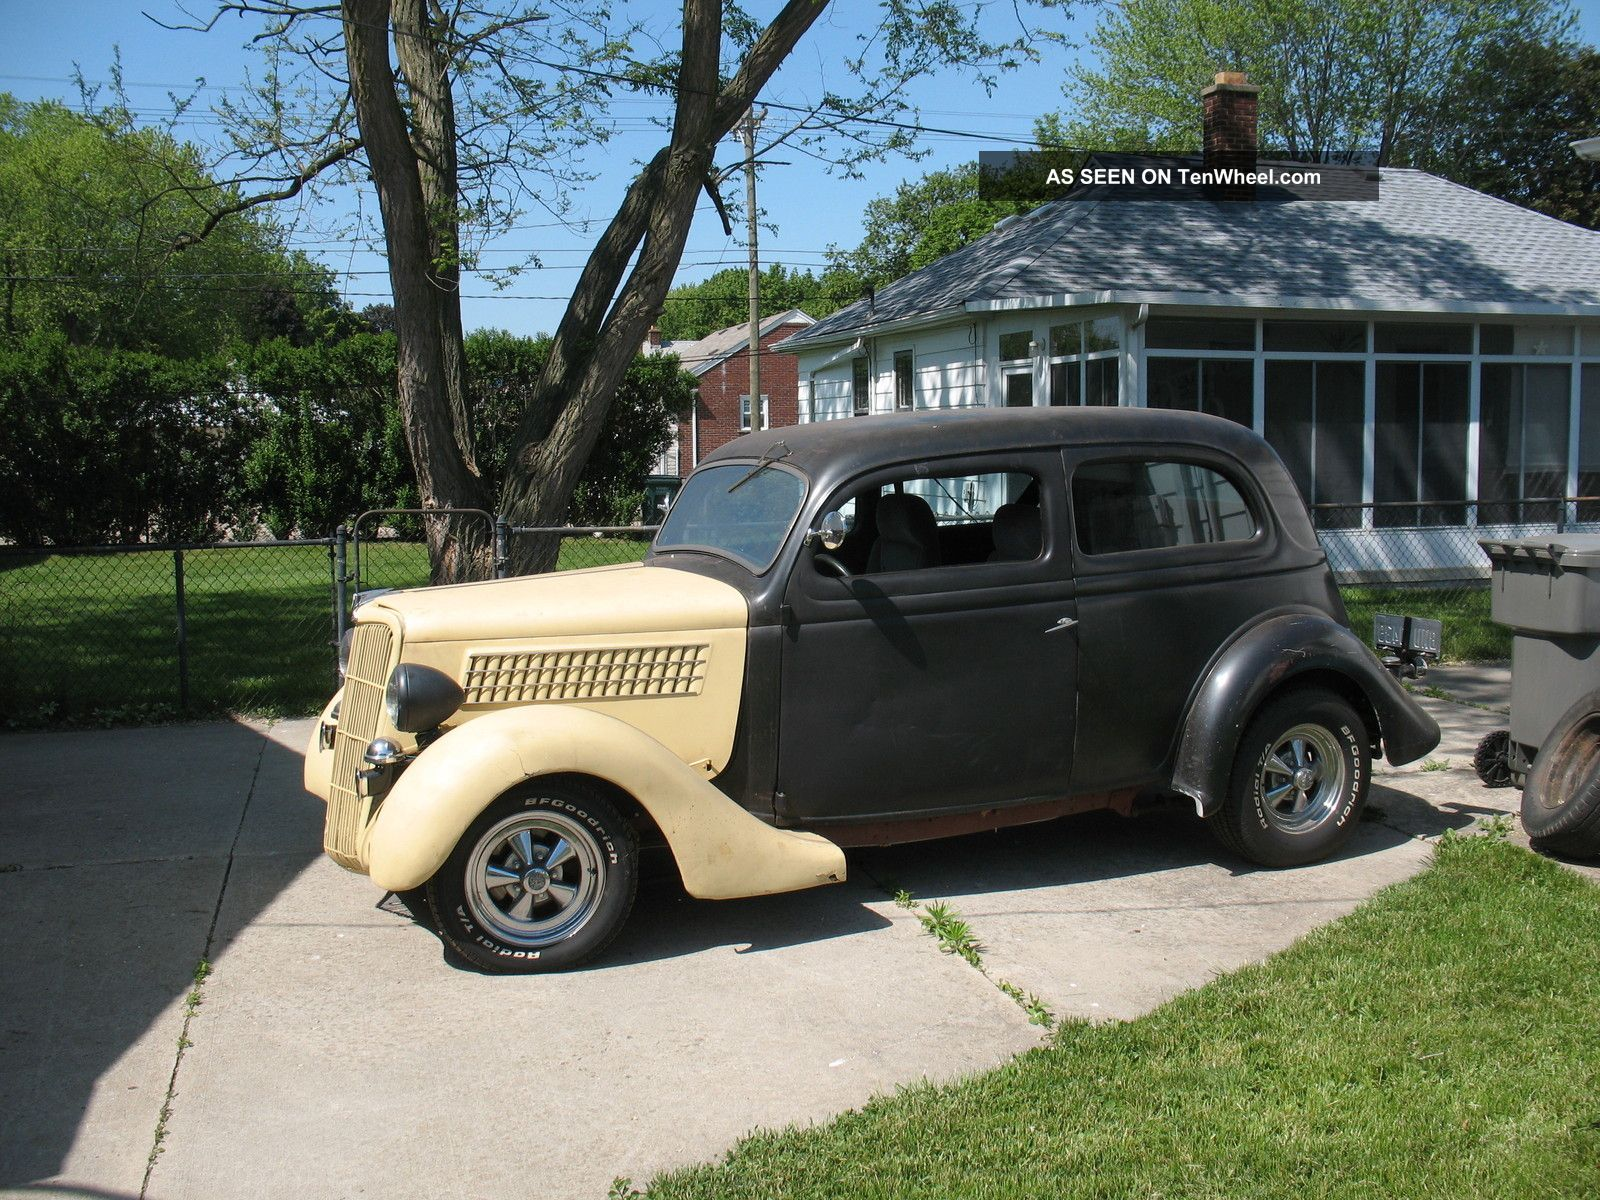 Da in addition Ford Slant Back Street Rod Project Lgw besides Dsc together with Chevrolet Standard together with Awesome Ford Slantback Street Hot Rod For Sale. on 1935 ford slant back street rod